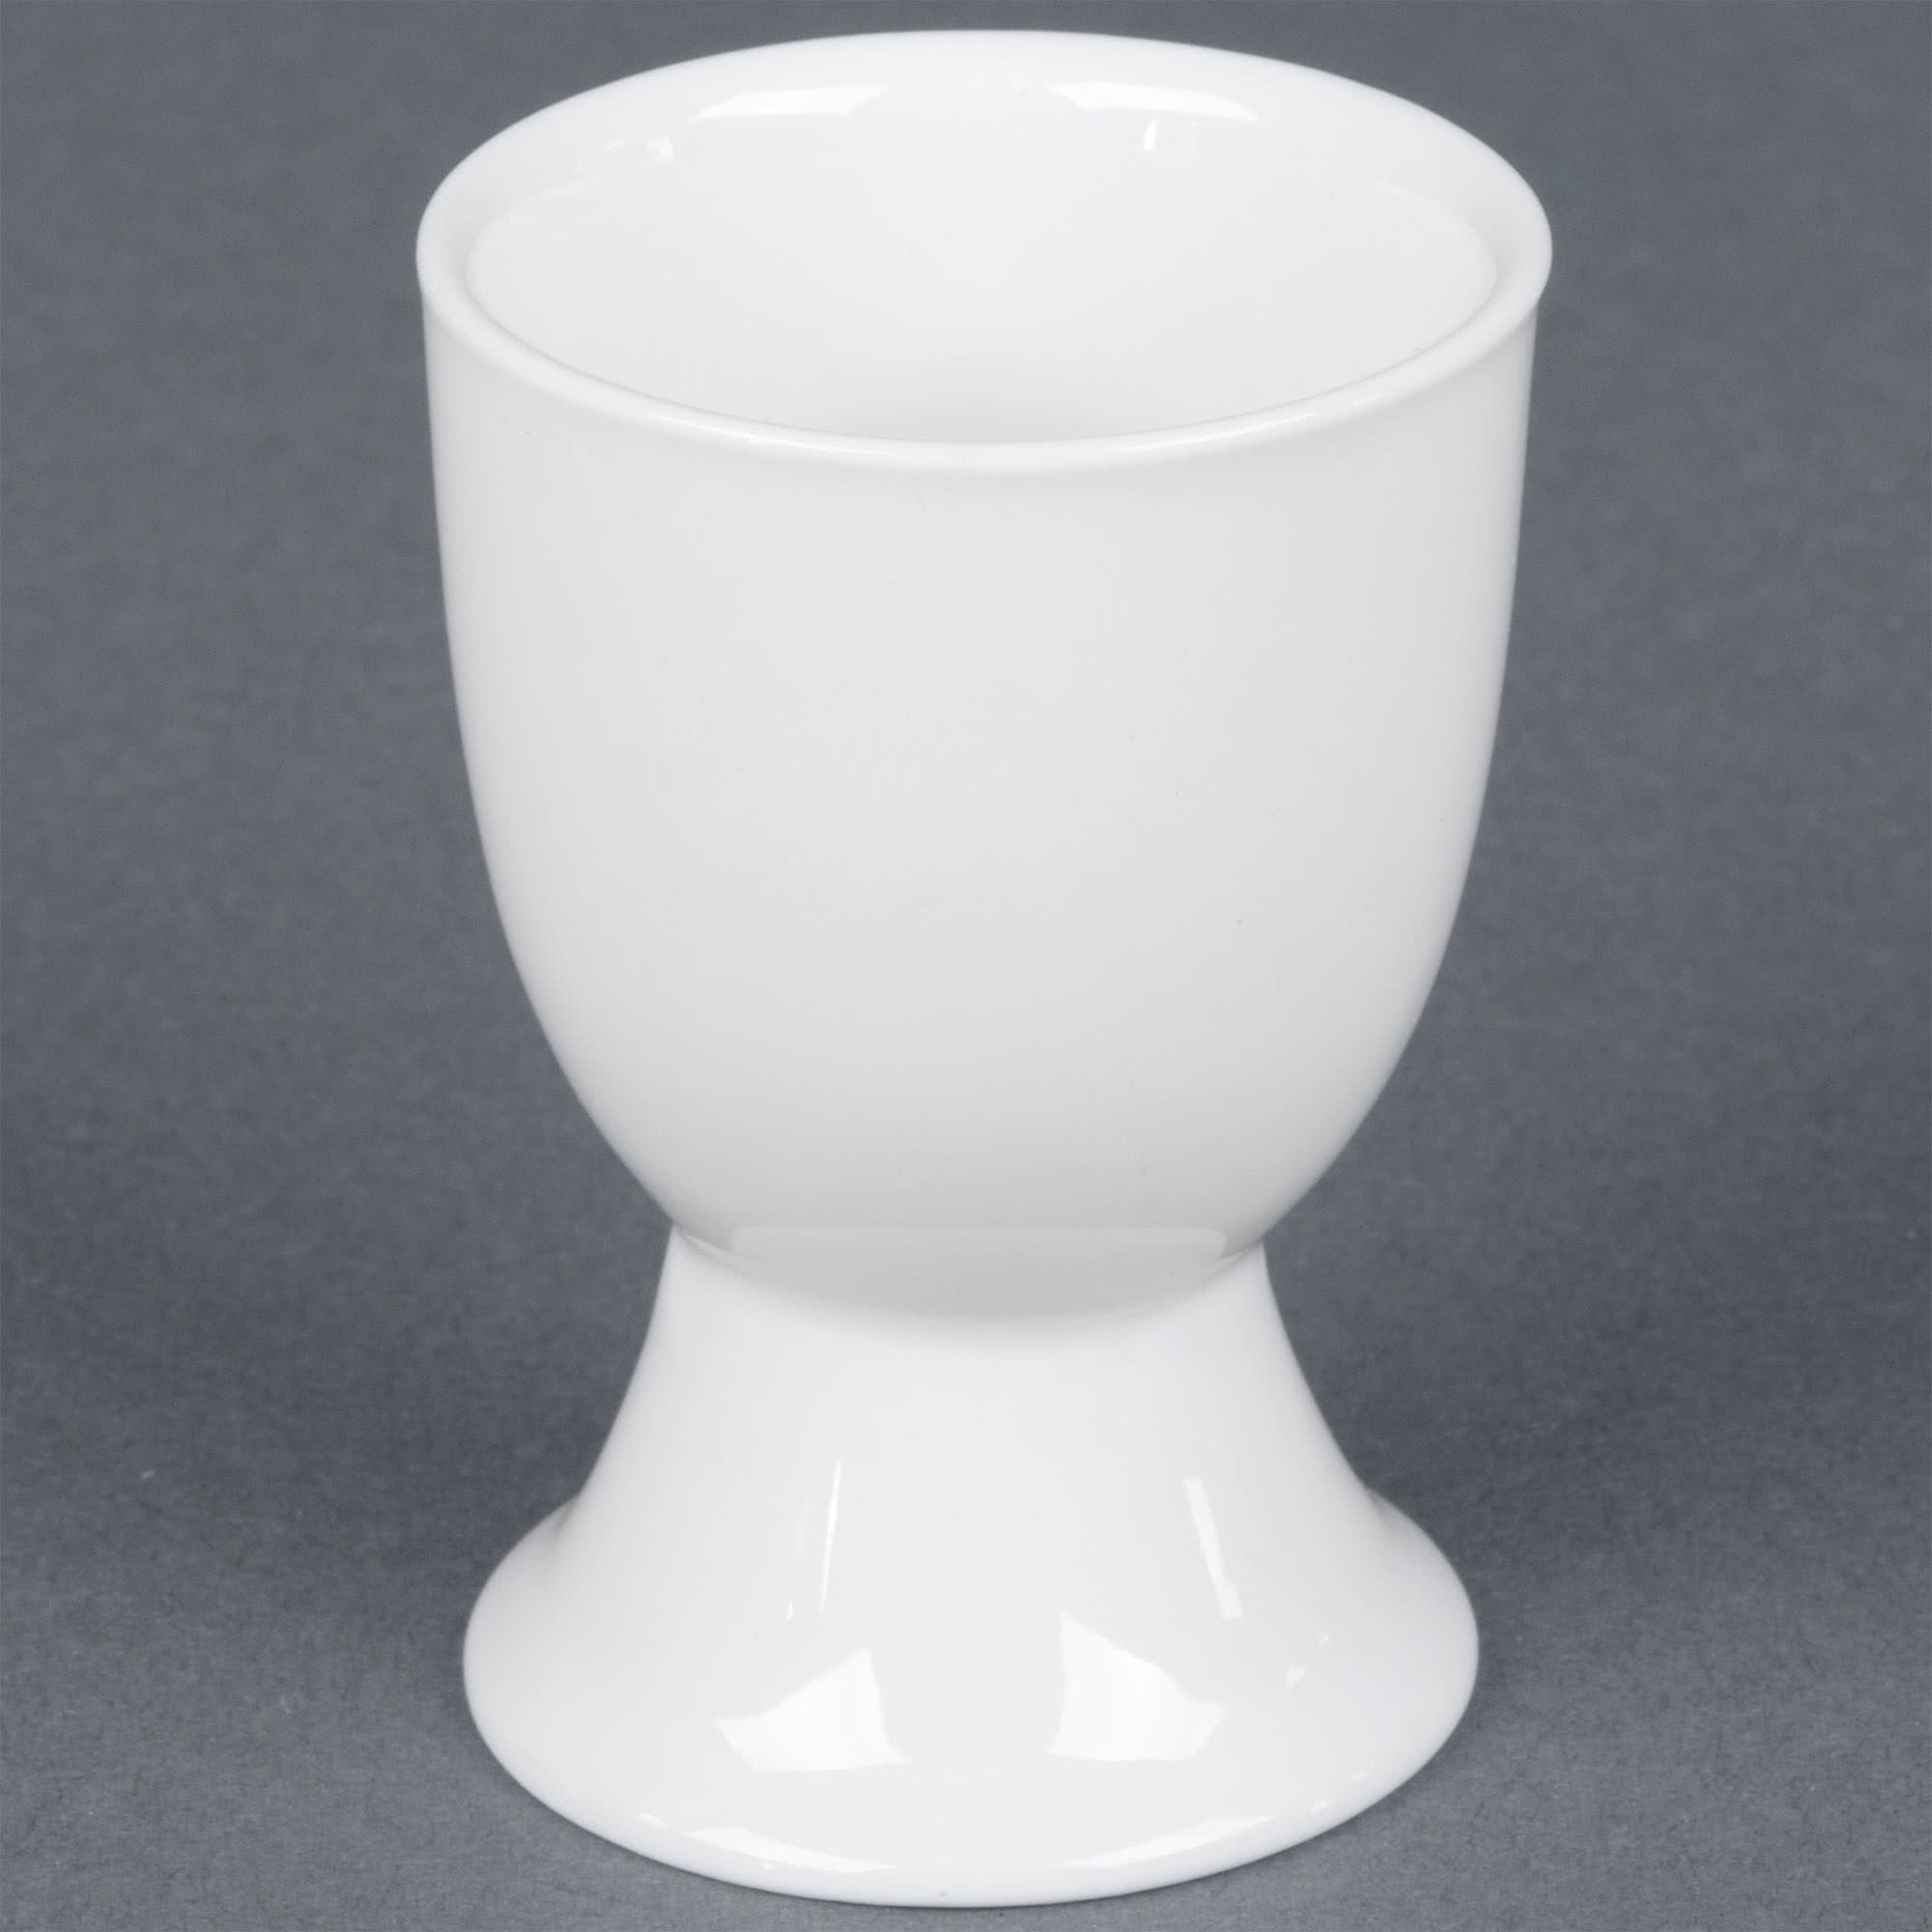 TableTop King EGC-3 White China Egg Cup 1.5 oz. - 48/Case